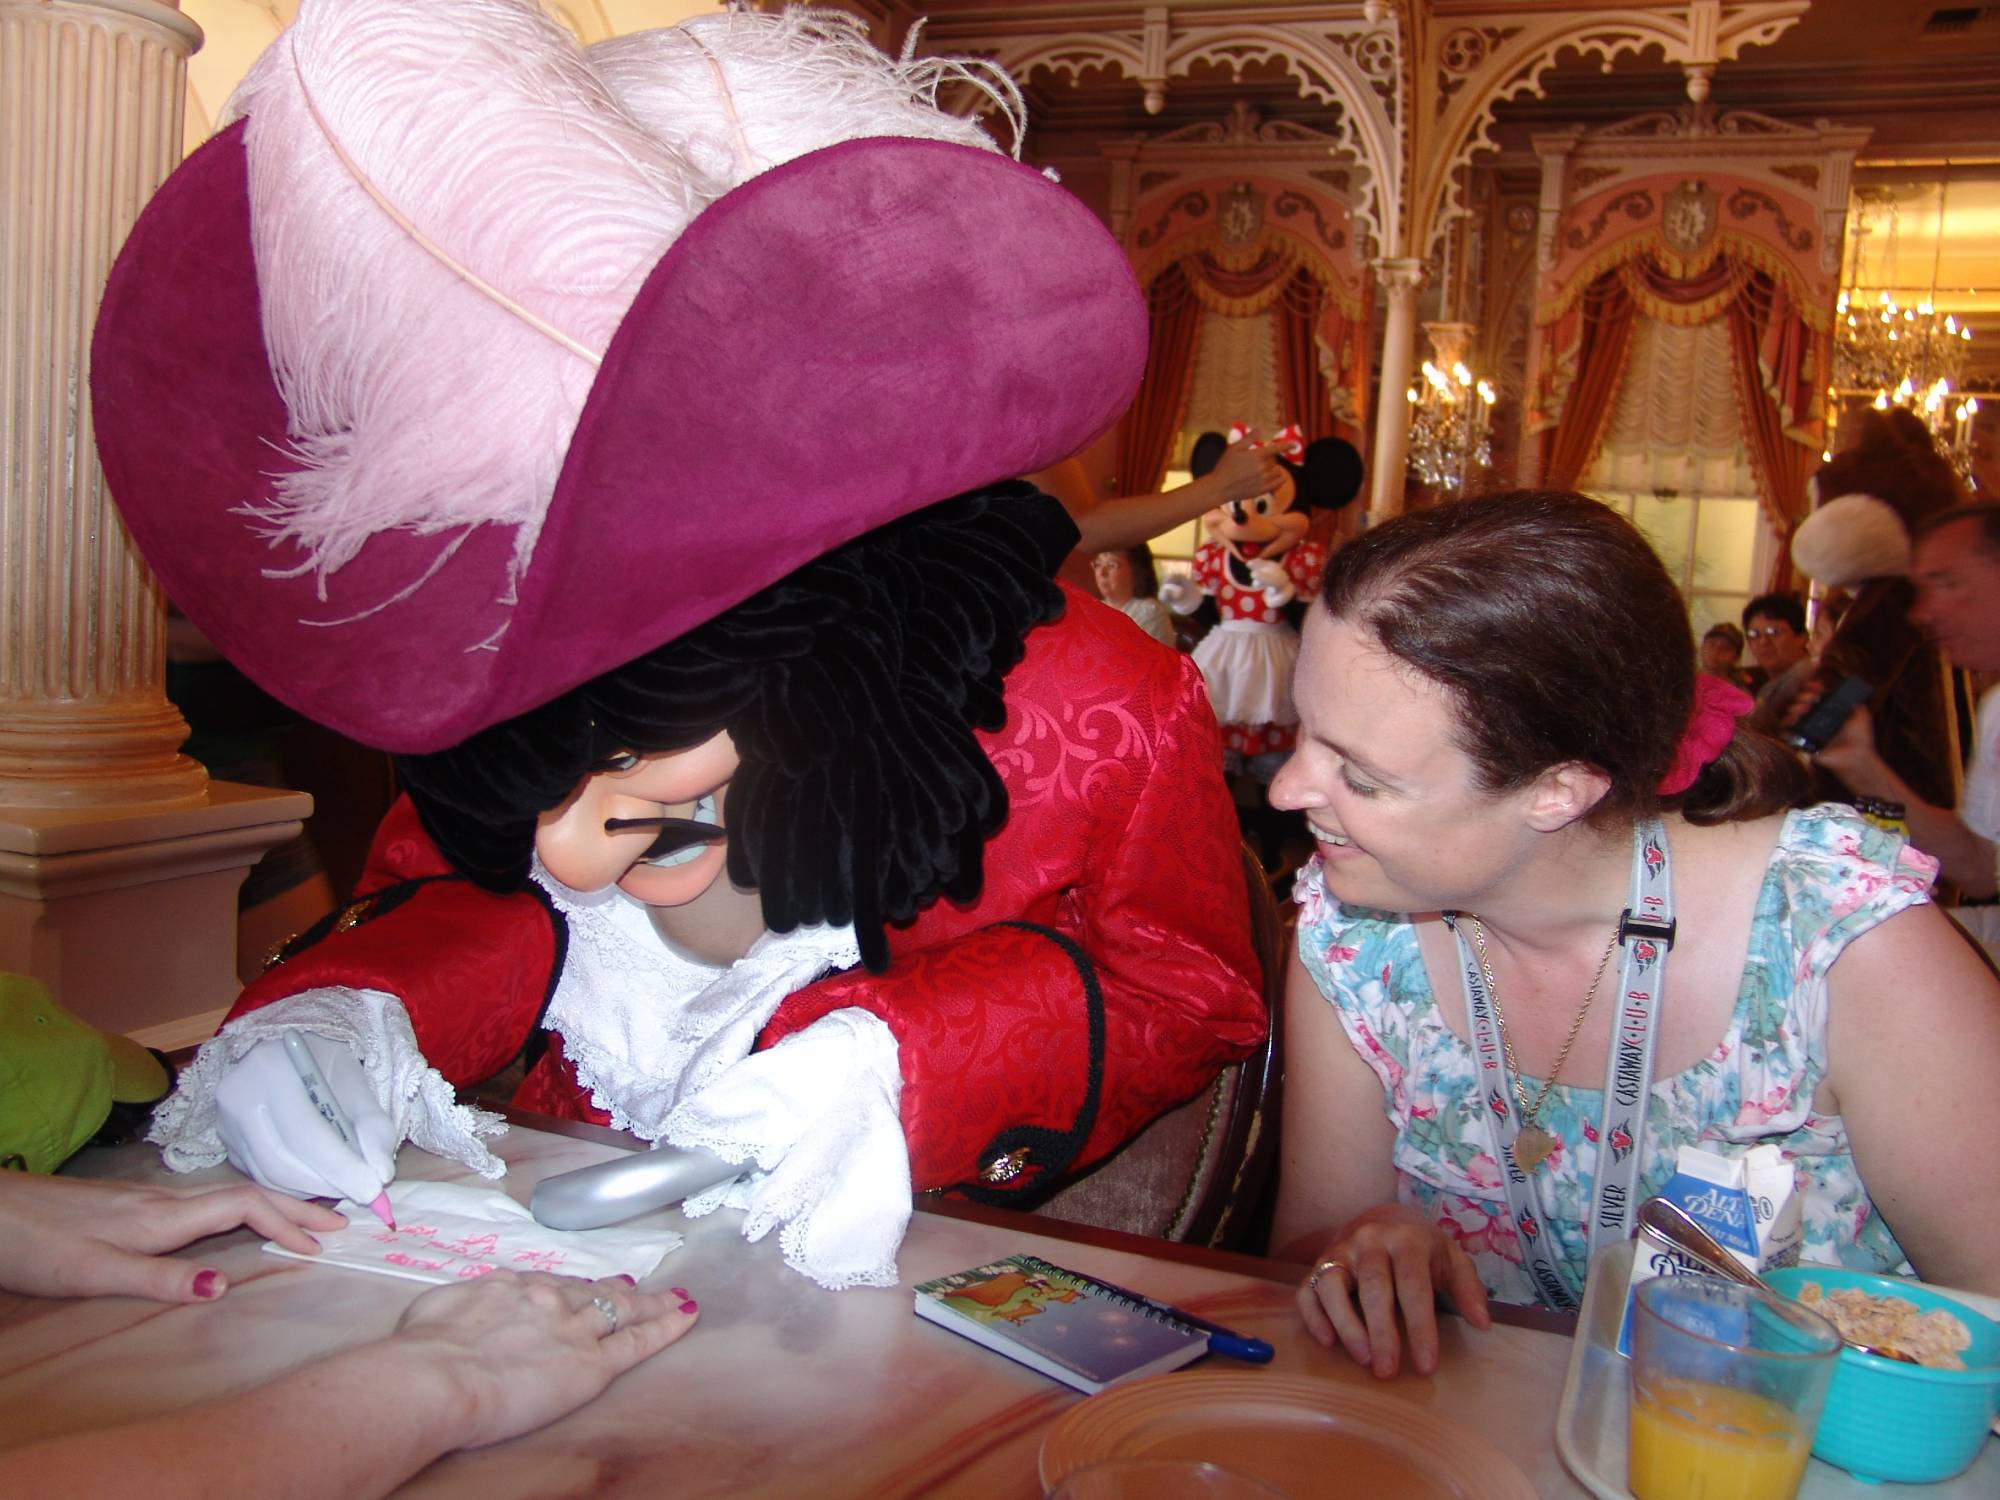 Enjoy the difference character dining experiences at Disney Parks around the world | PassPorter.com